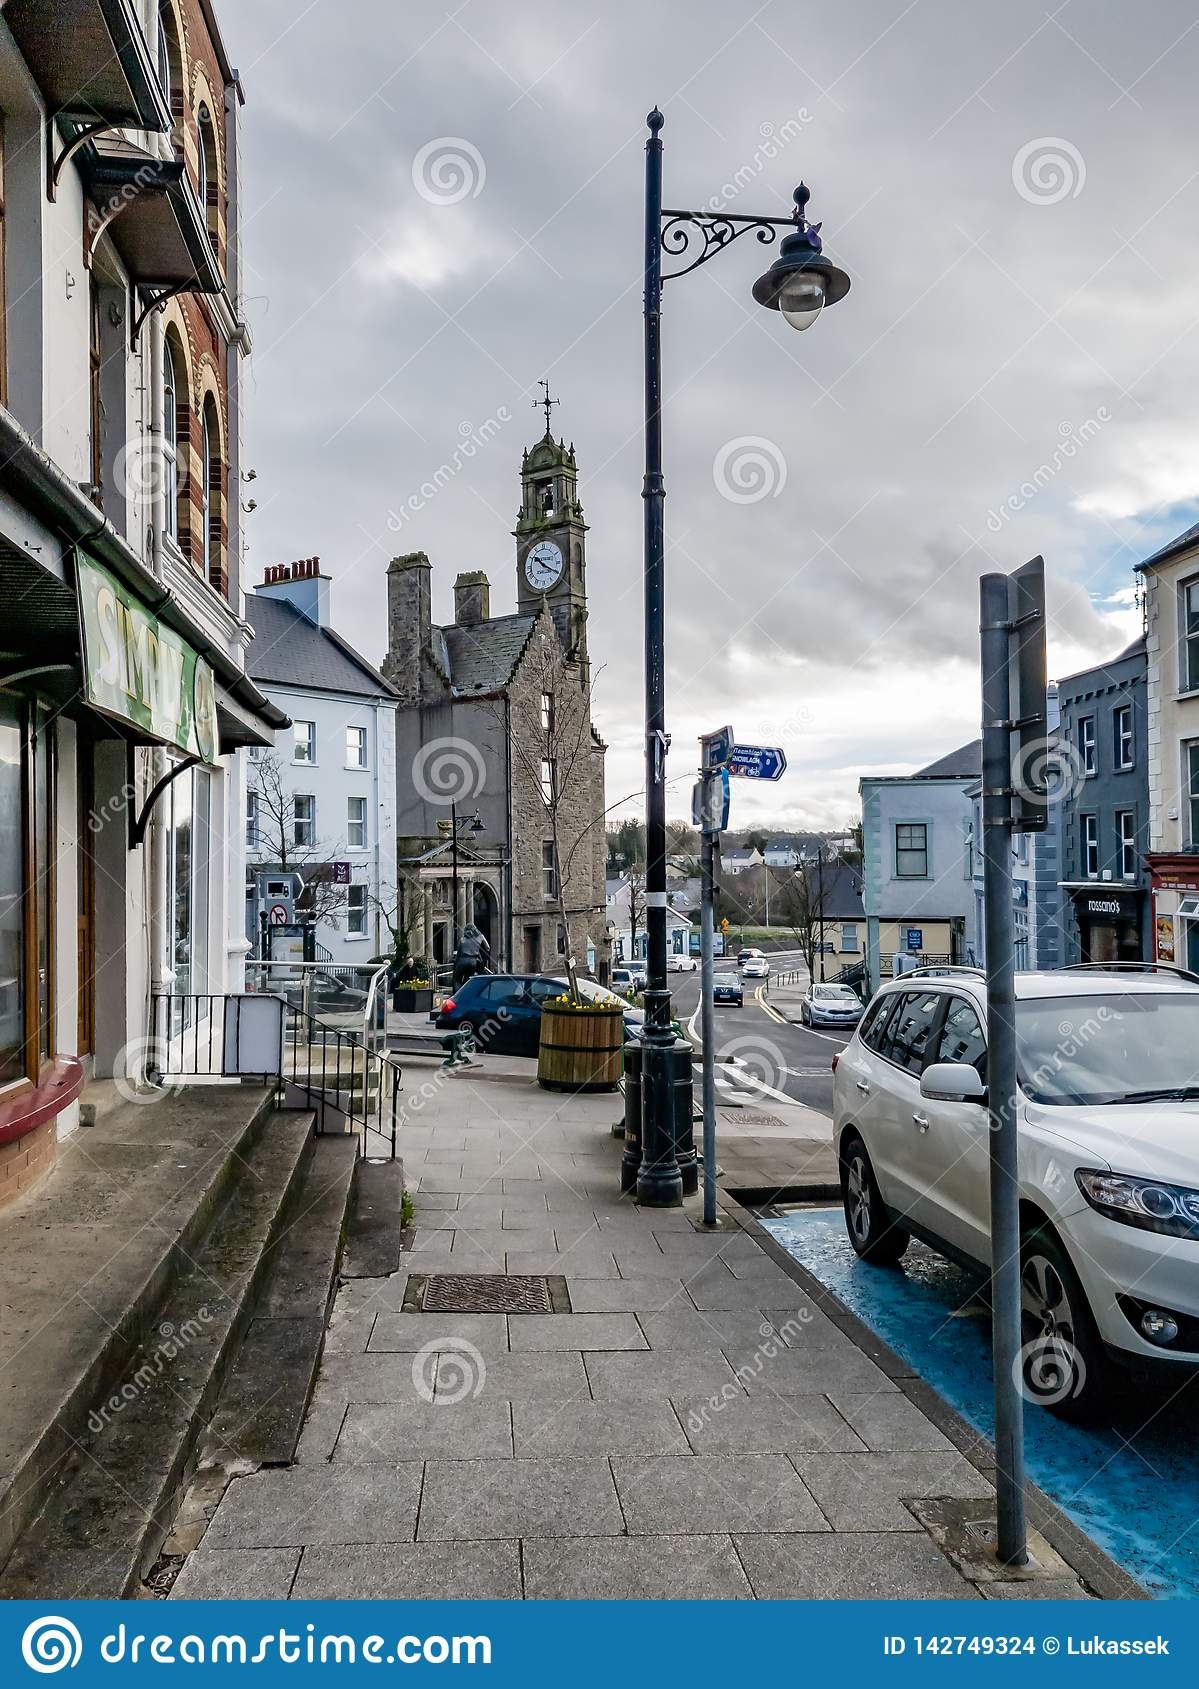 Irish Road Sign Ballyshannon County Donegal Ireland/'s Oldest Town IN STOCK